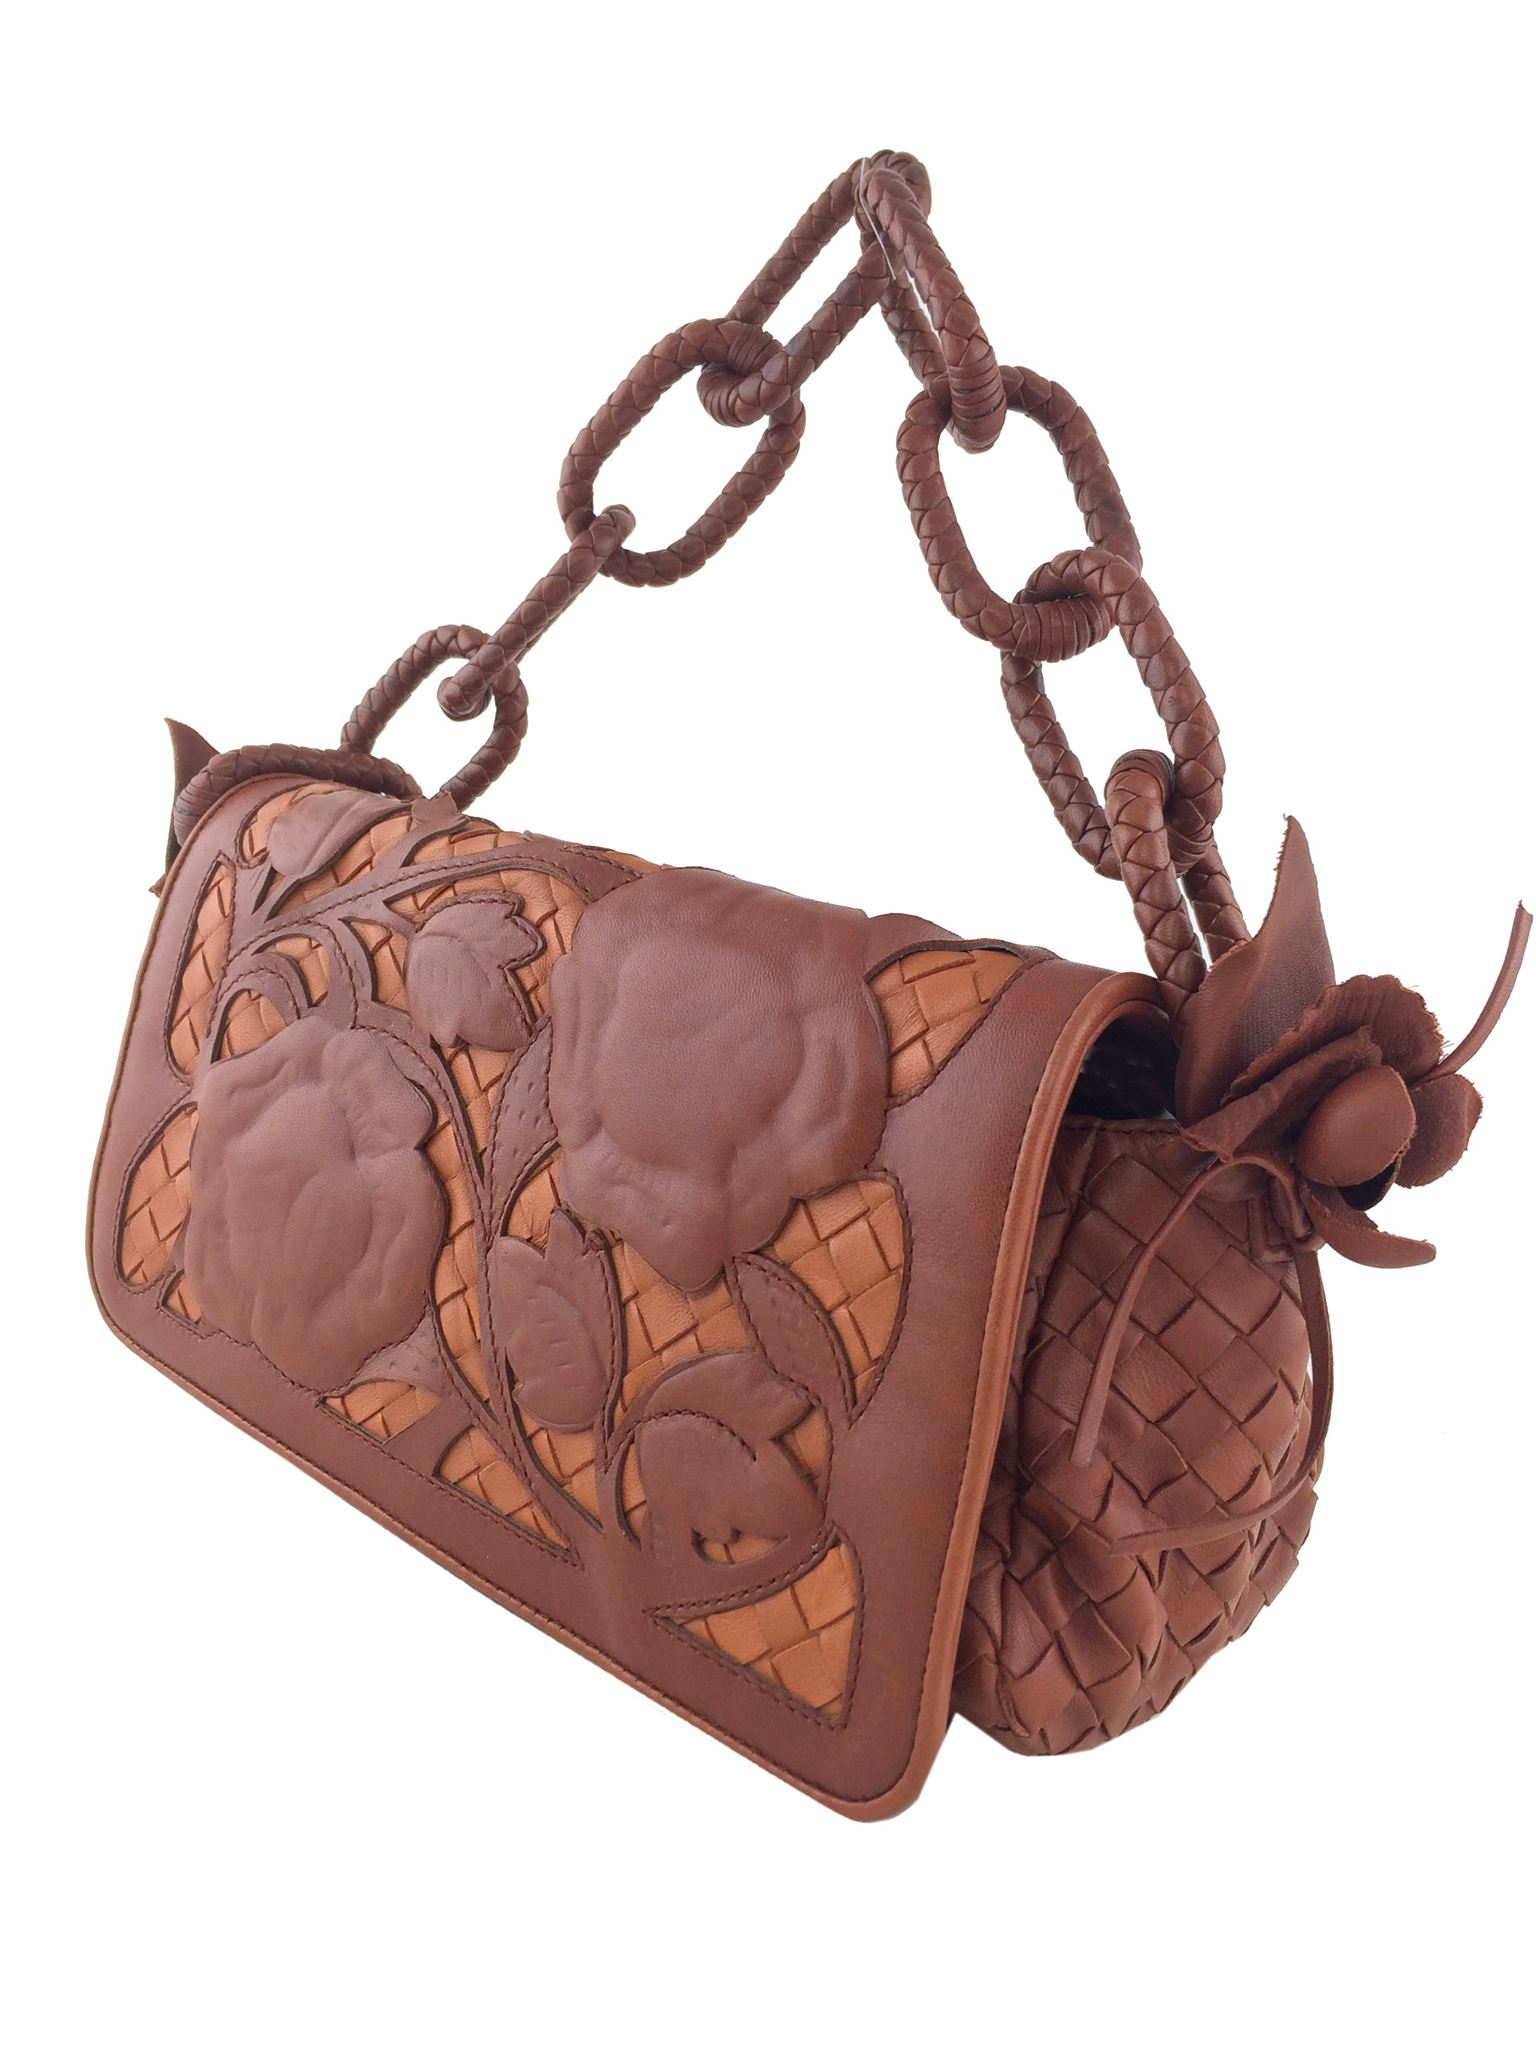 284a7df24292 Bottega Veneta Limited Edition Floral Leather Applique Bag. Liquid error   Index was out of range. Must be non-negative and less than the size of the  ...